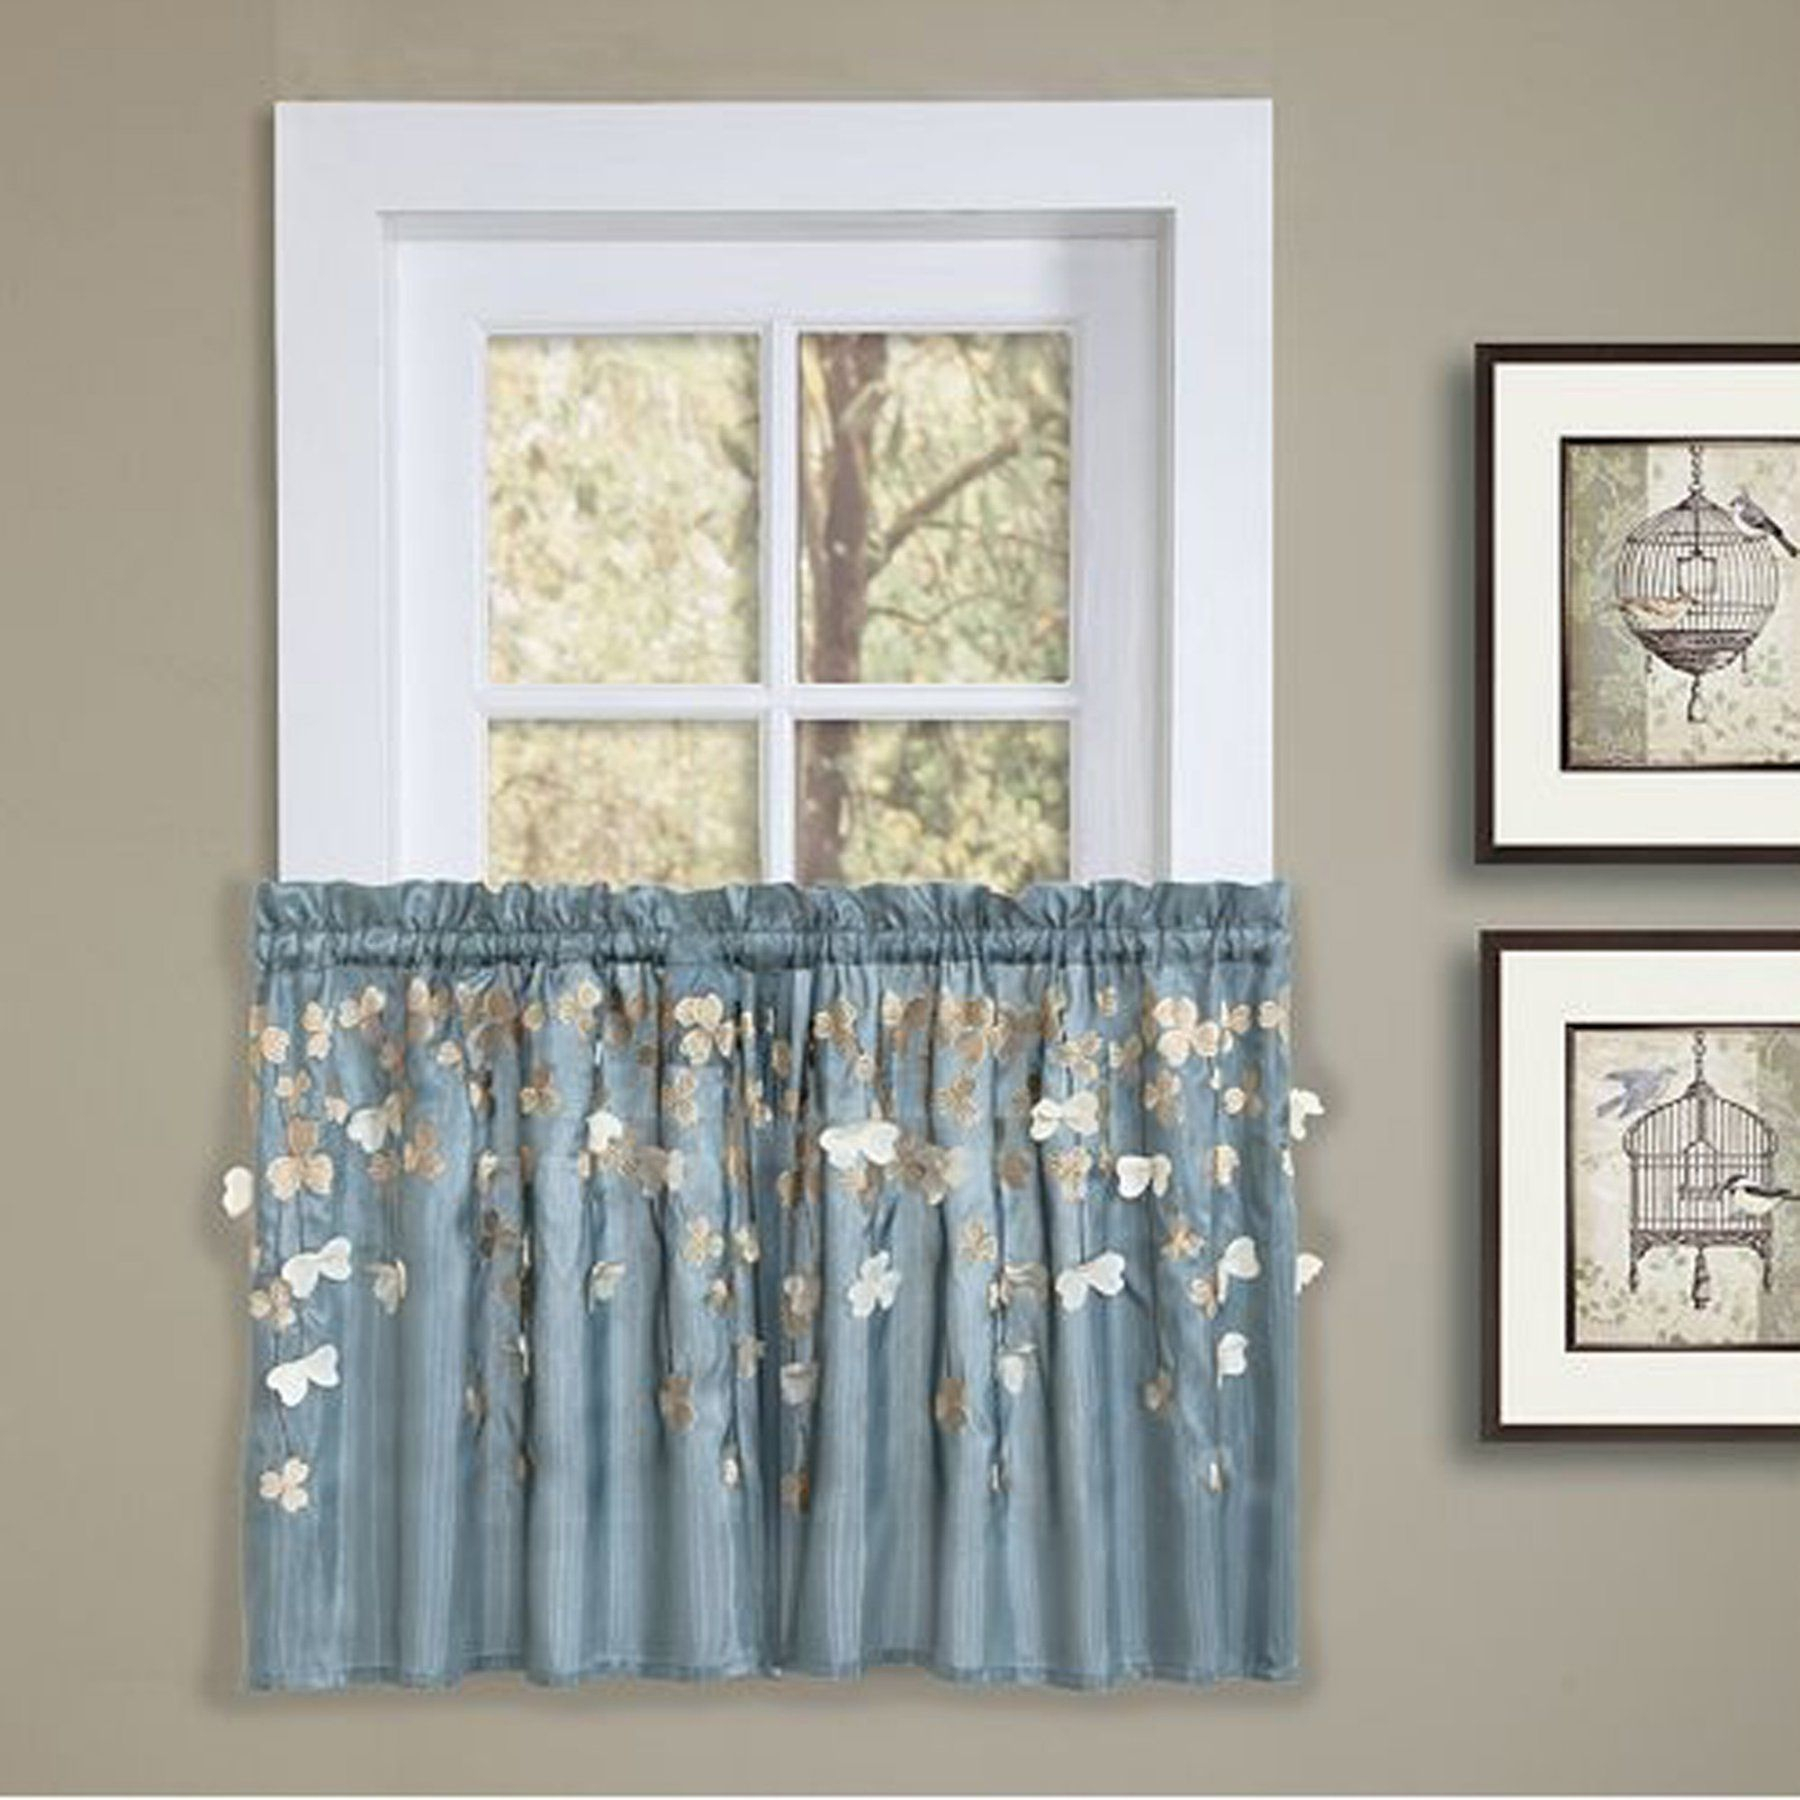 Lush Decor Flower Drops Kitchen Tiers Pair – C10754P13 000 Pertaining To Semi Sheer Rod Pocket Kitchen Curtain Valance And Tiers Sets (View 13 of 20)